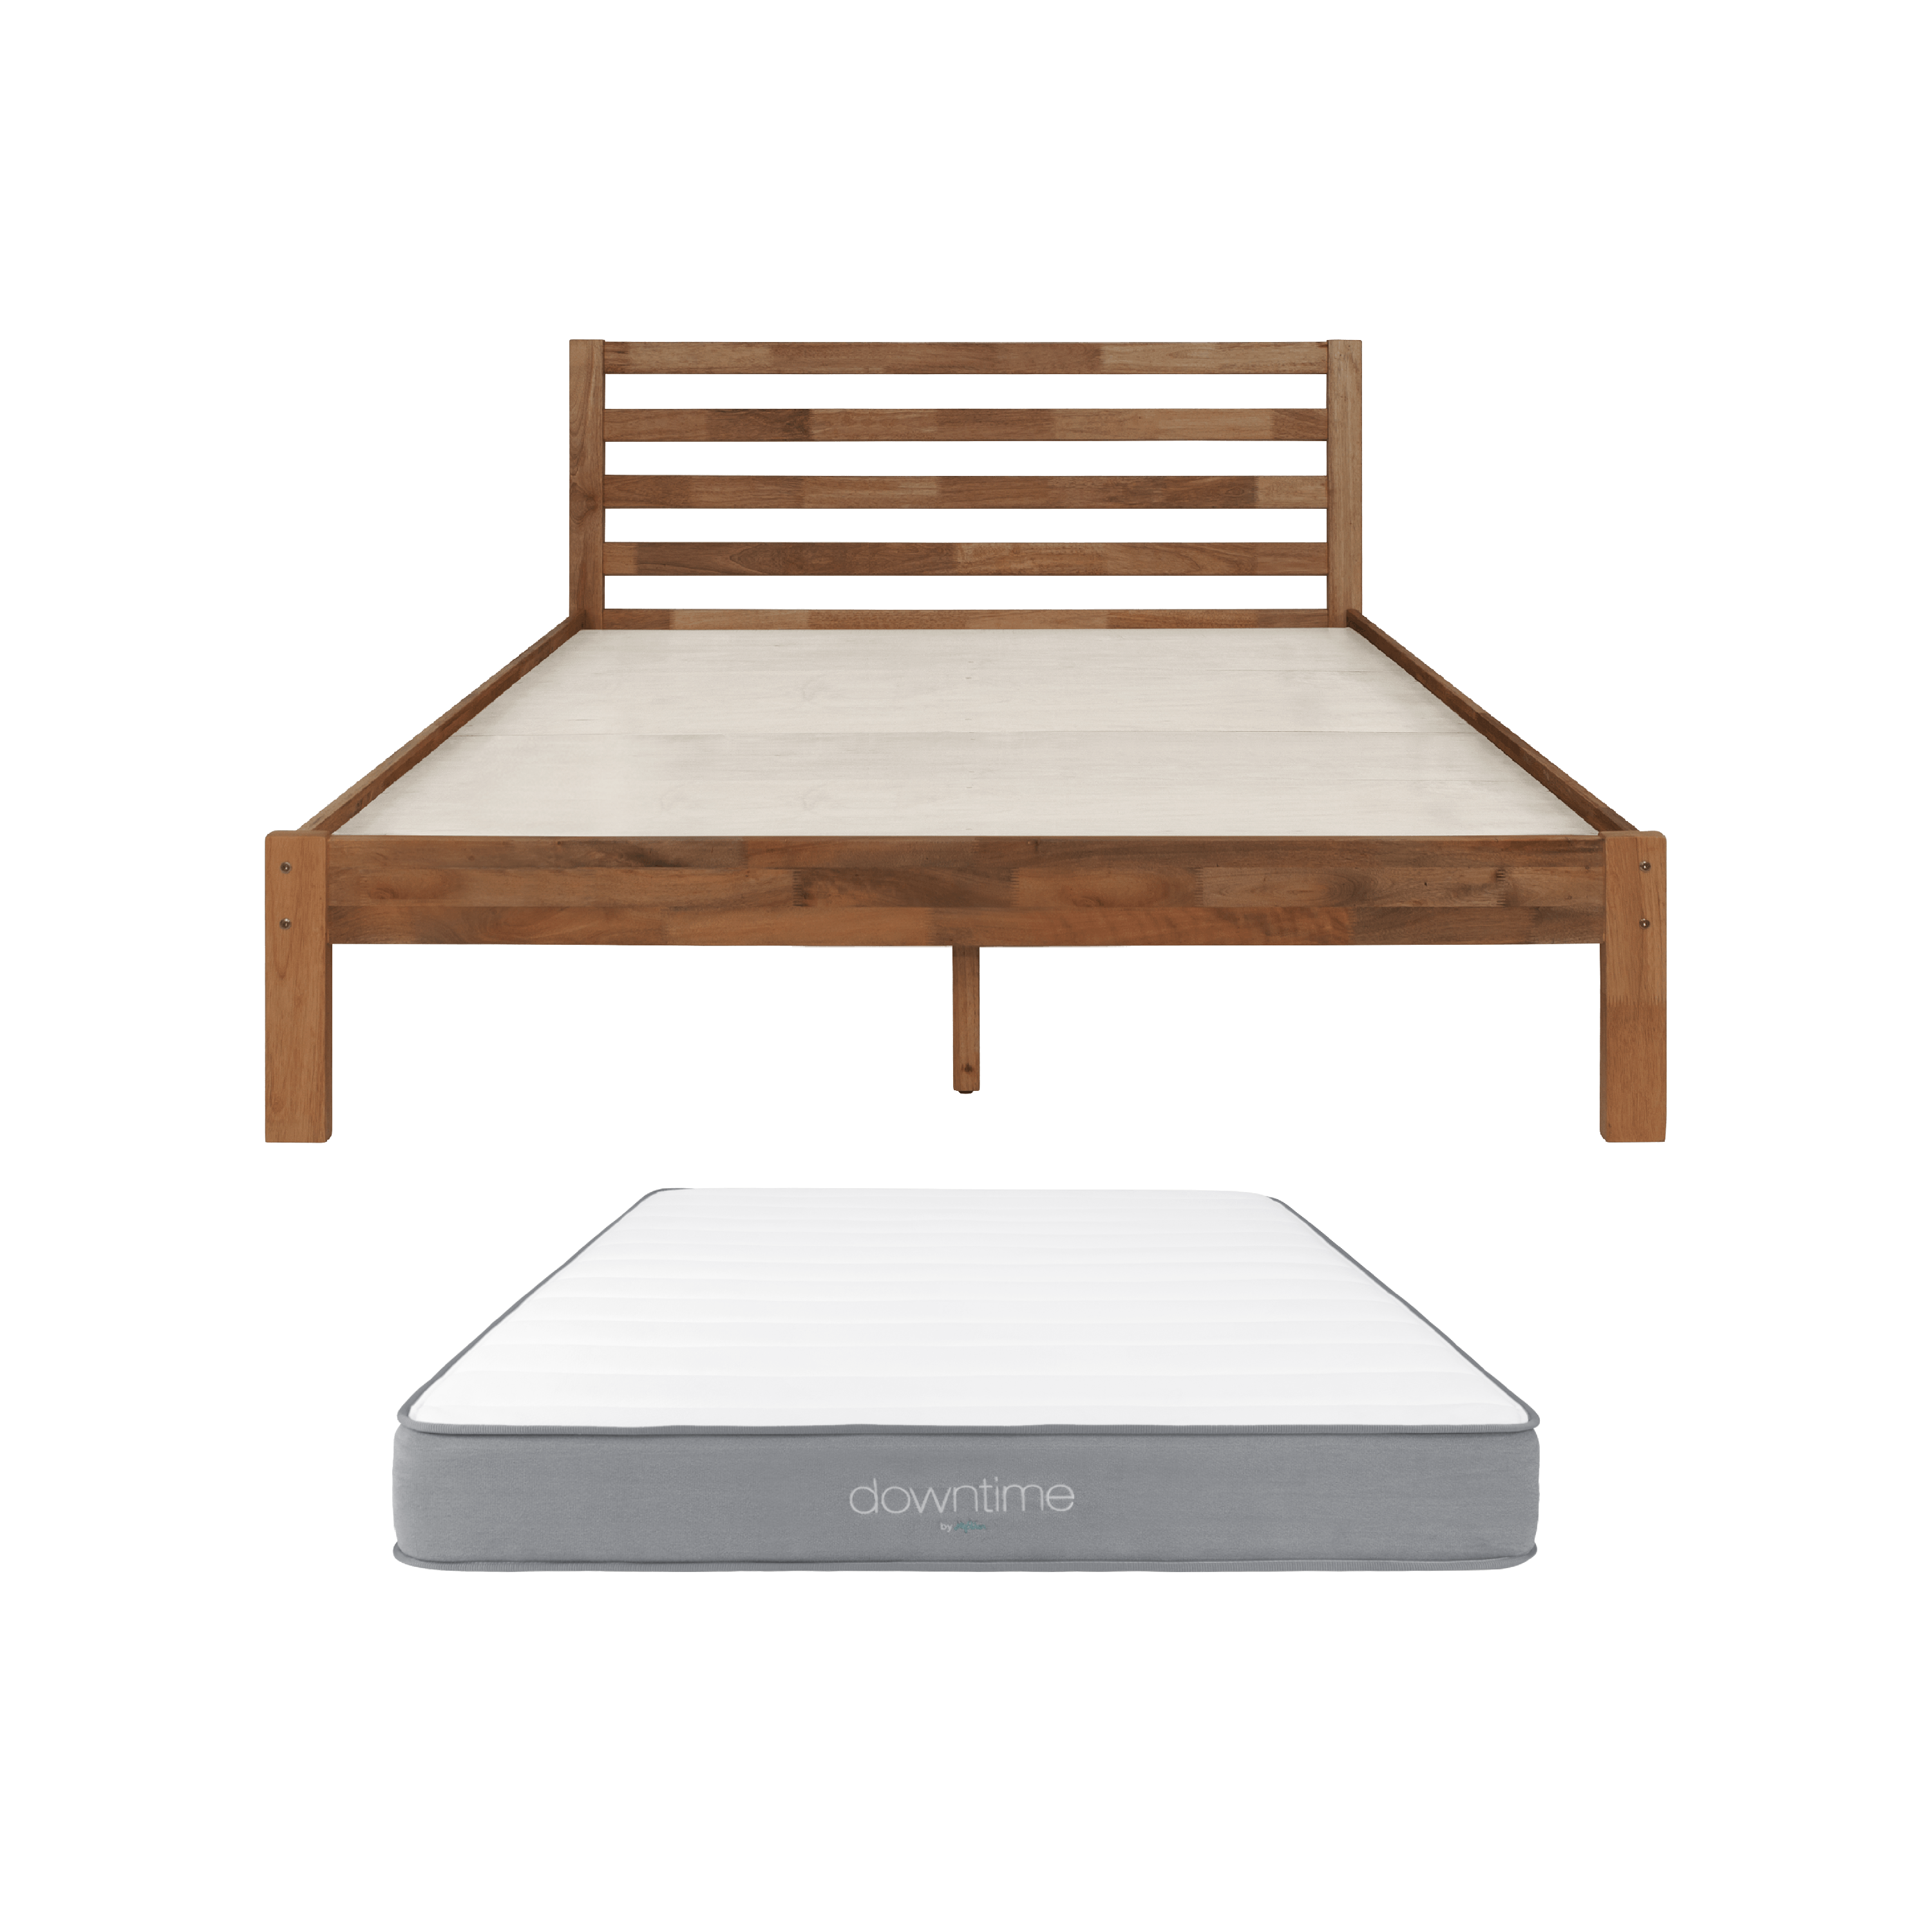 Kyoto King Bed In Walnut With Downtime Mattress 1 X Downtime